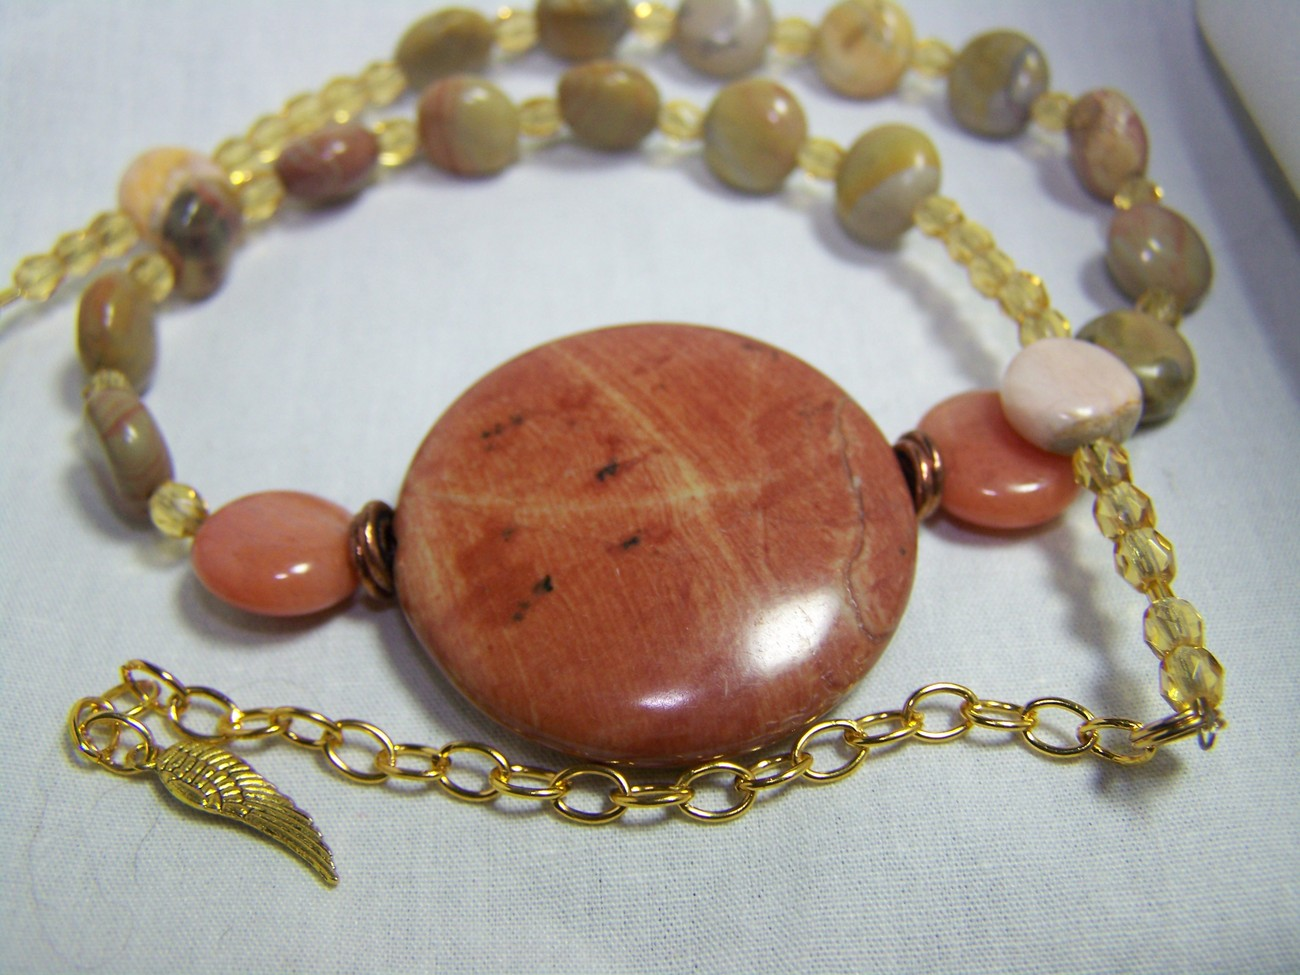 Jasper pendant stone glass gold 18 1/2inch necklace